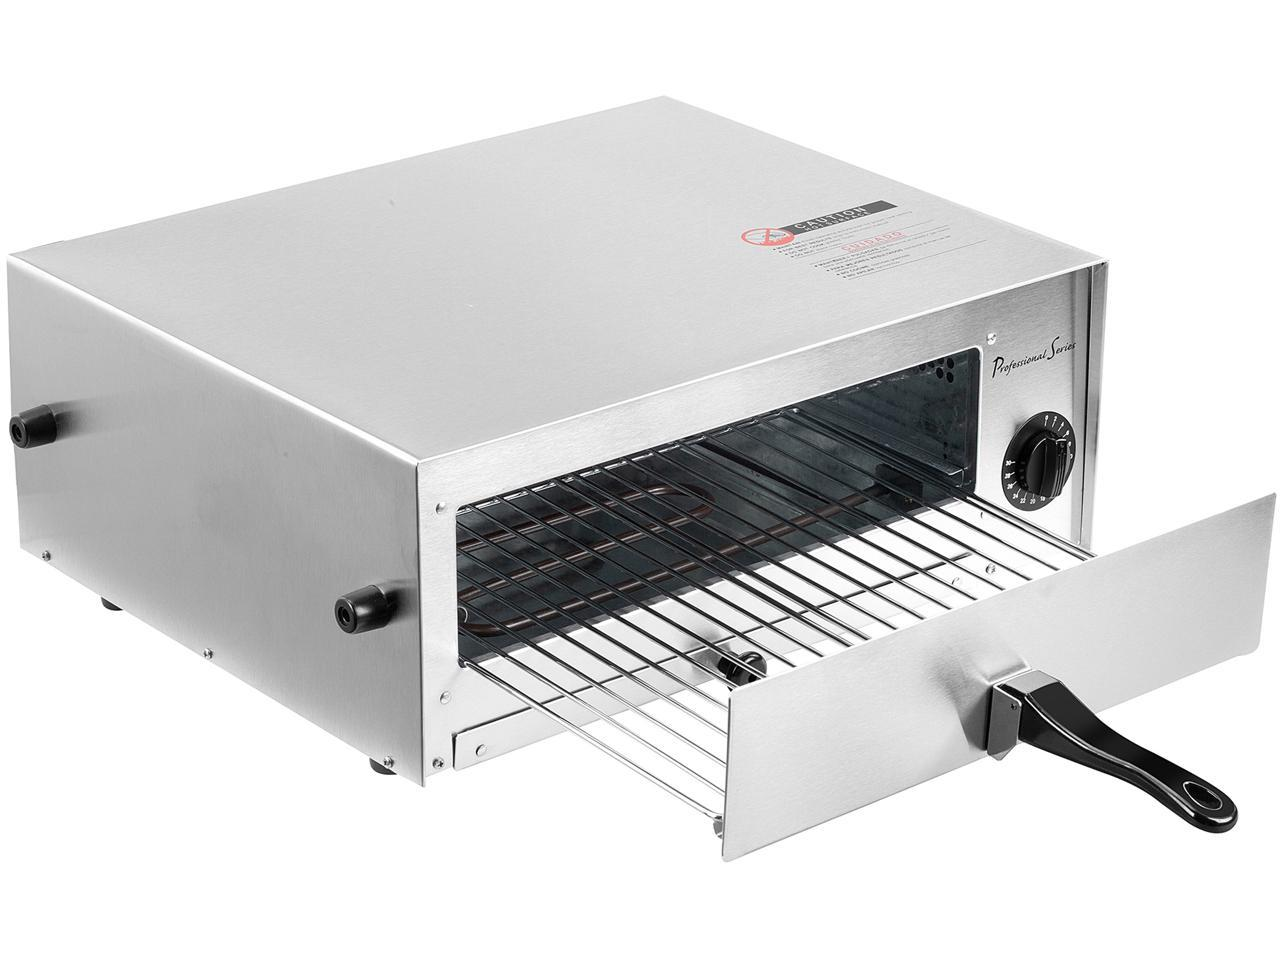 Continental Electric Ps75891 Stainless Steel Pizza Oven Baker And Frozen Snack Oven Newegg Com